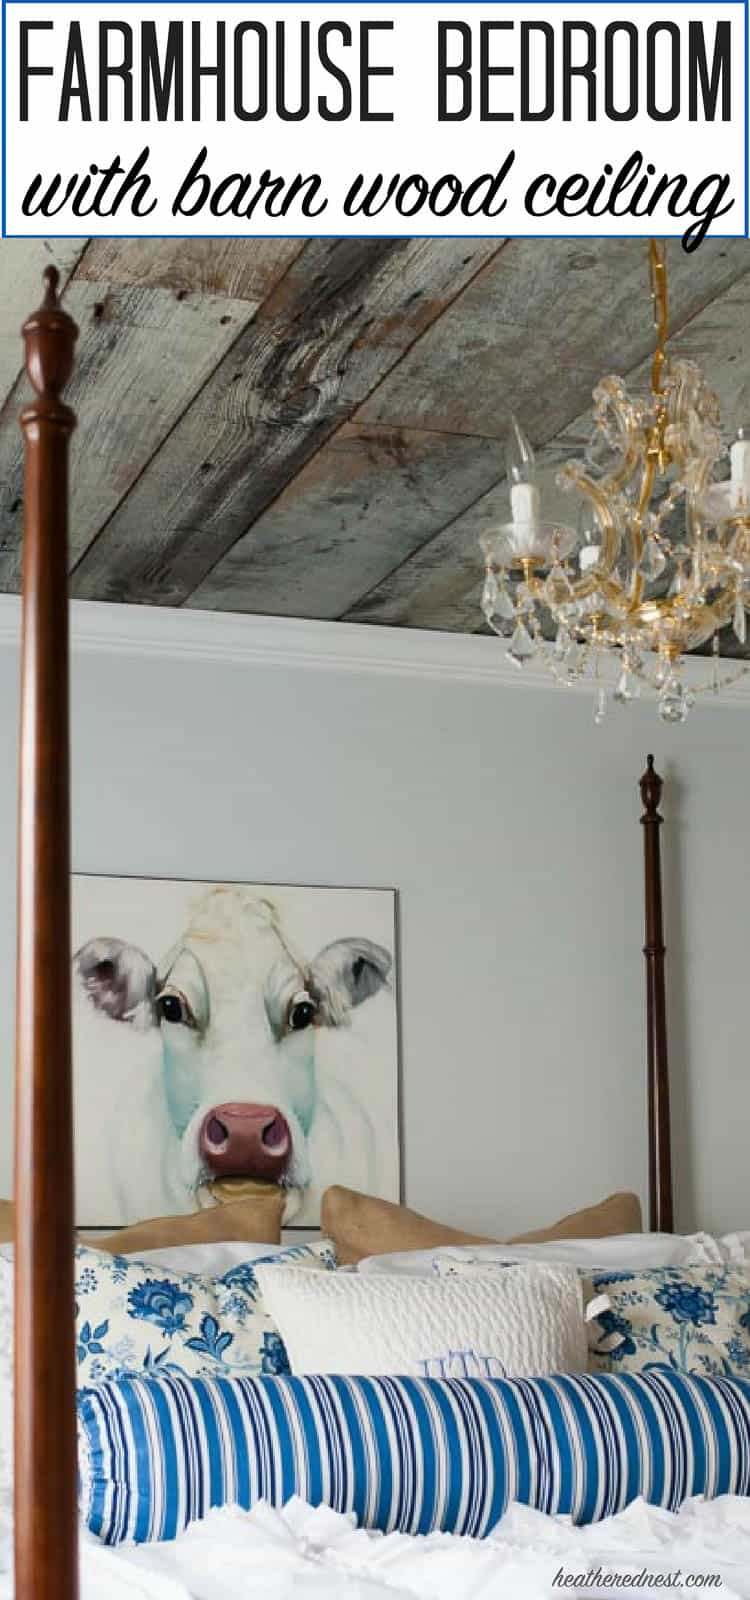 GORGEOUS! Farmhouse bedroom/guest room at heatherednest.com with toile settee, mini chandelier and reclaimed wood ceiling. Love all the DIY and rustic elements!